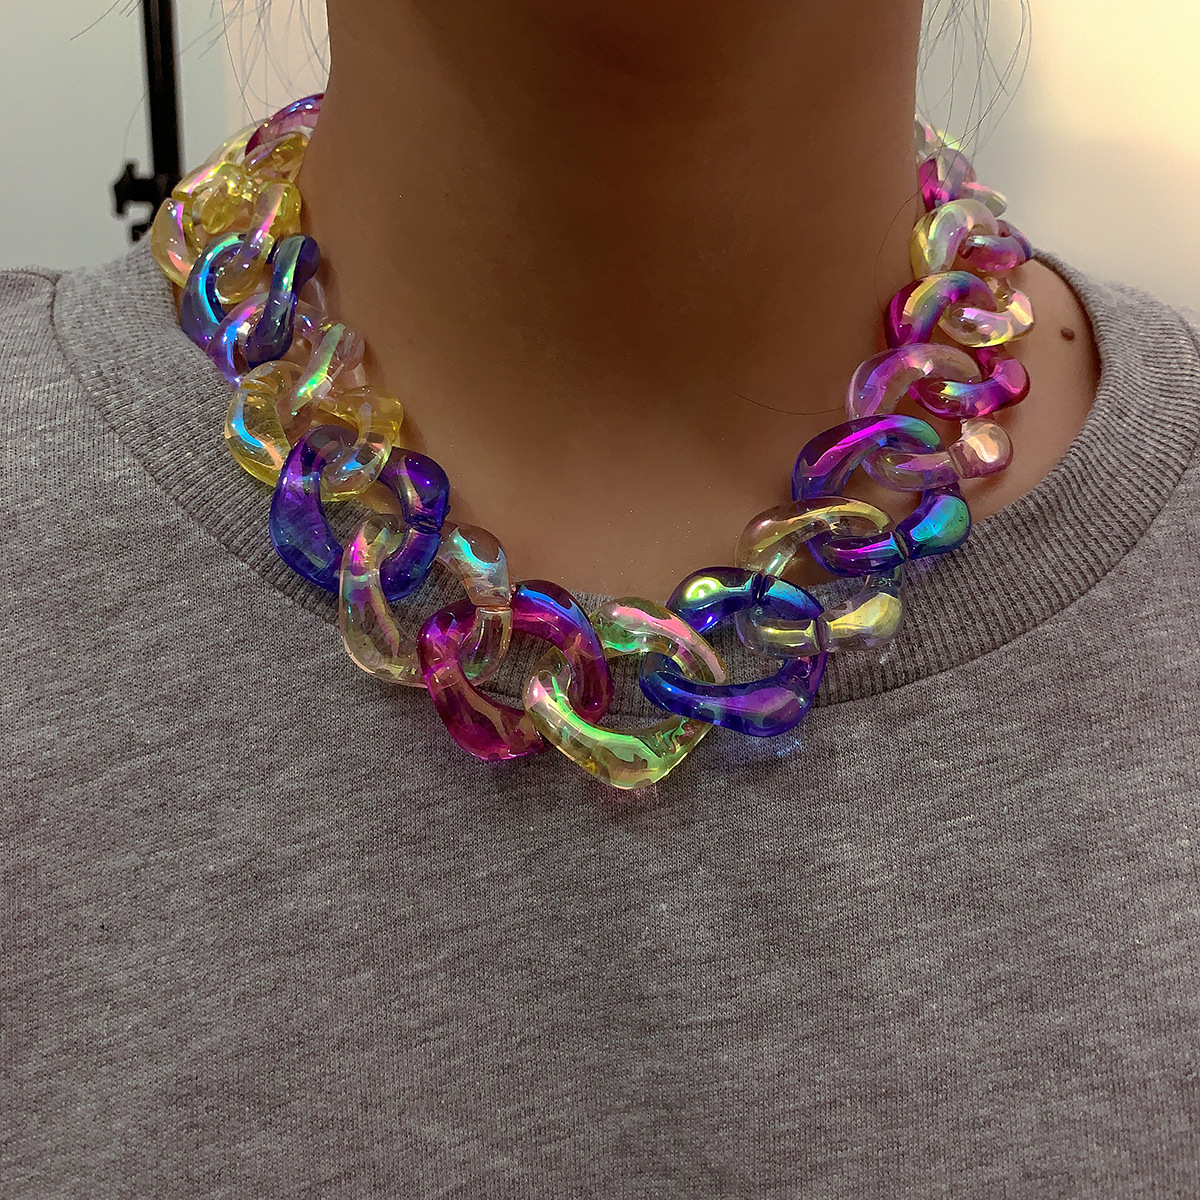 2020 New Punk Style Colorful Acrylic Chains Necklace for Woman Clothings Accessories